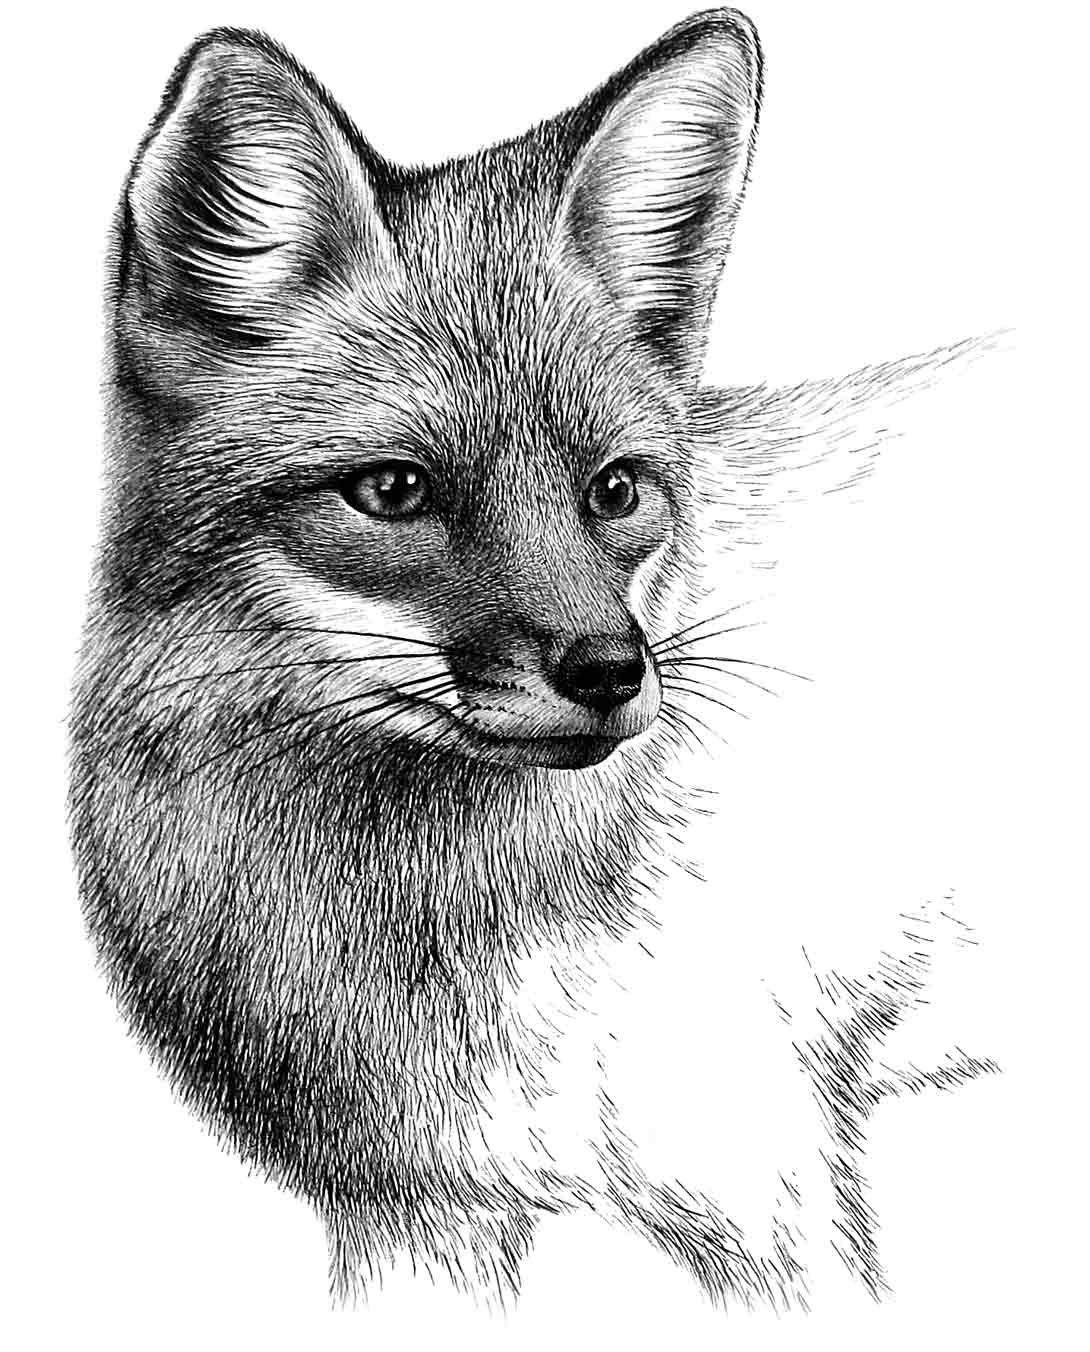 how to draw a realistic fox realistic fox drawing in 4 steps with photoshop in 2020 draw realistic to how fox a